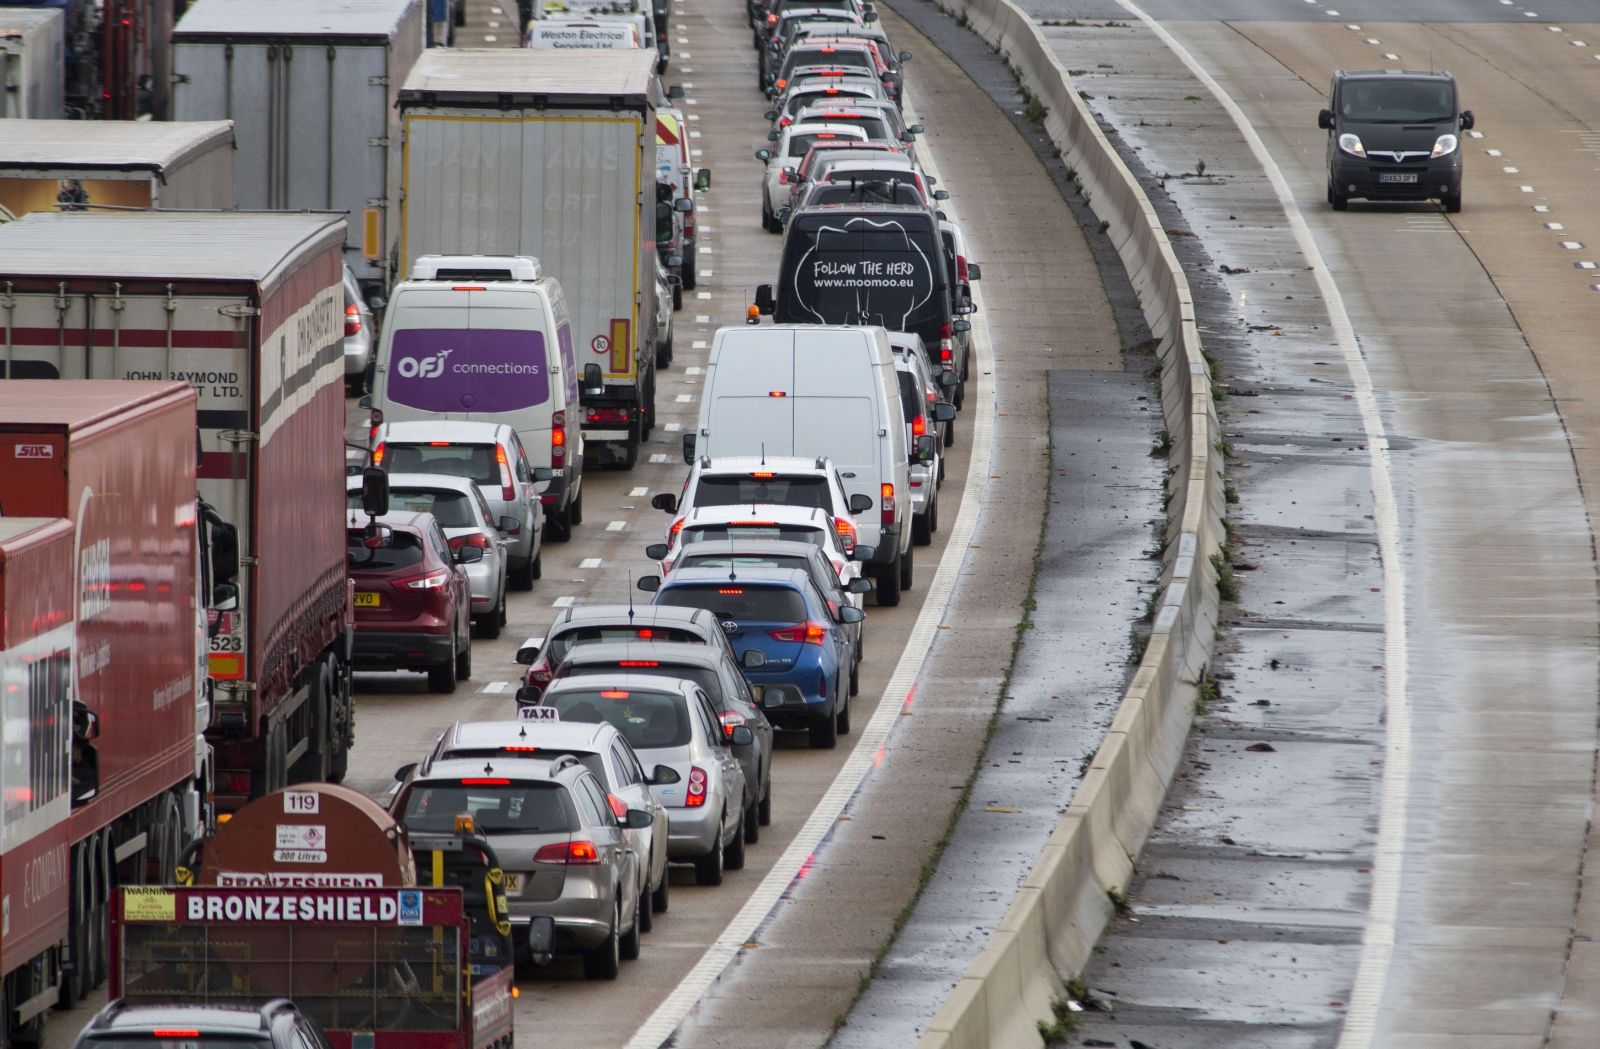 Road traffic noise and early deaths